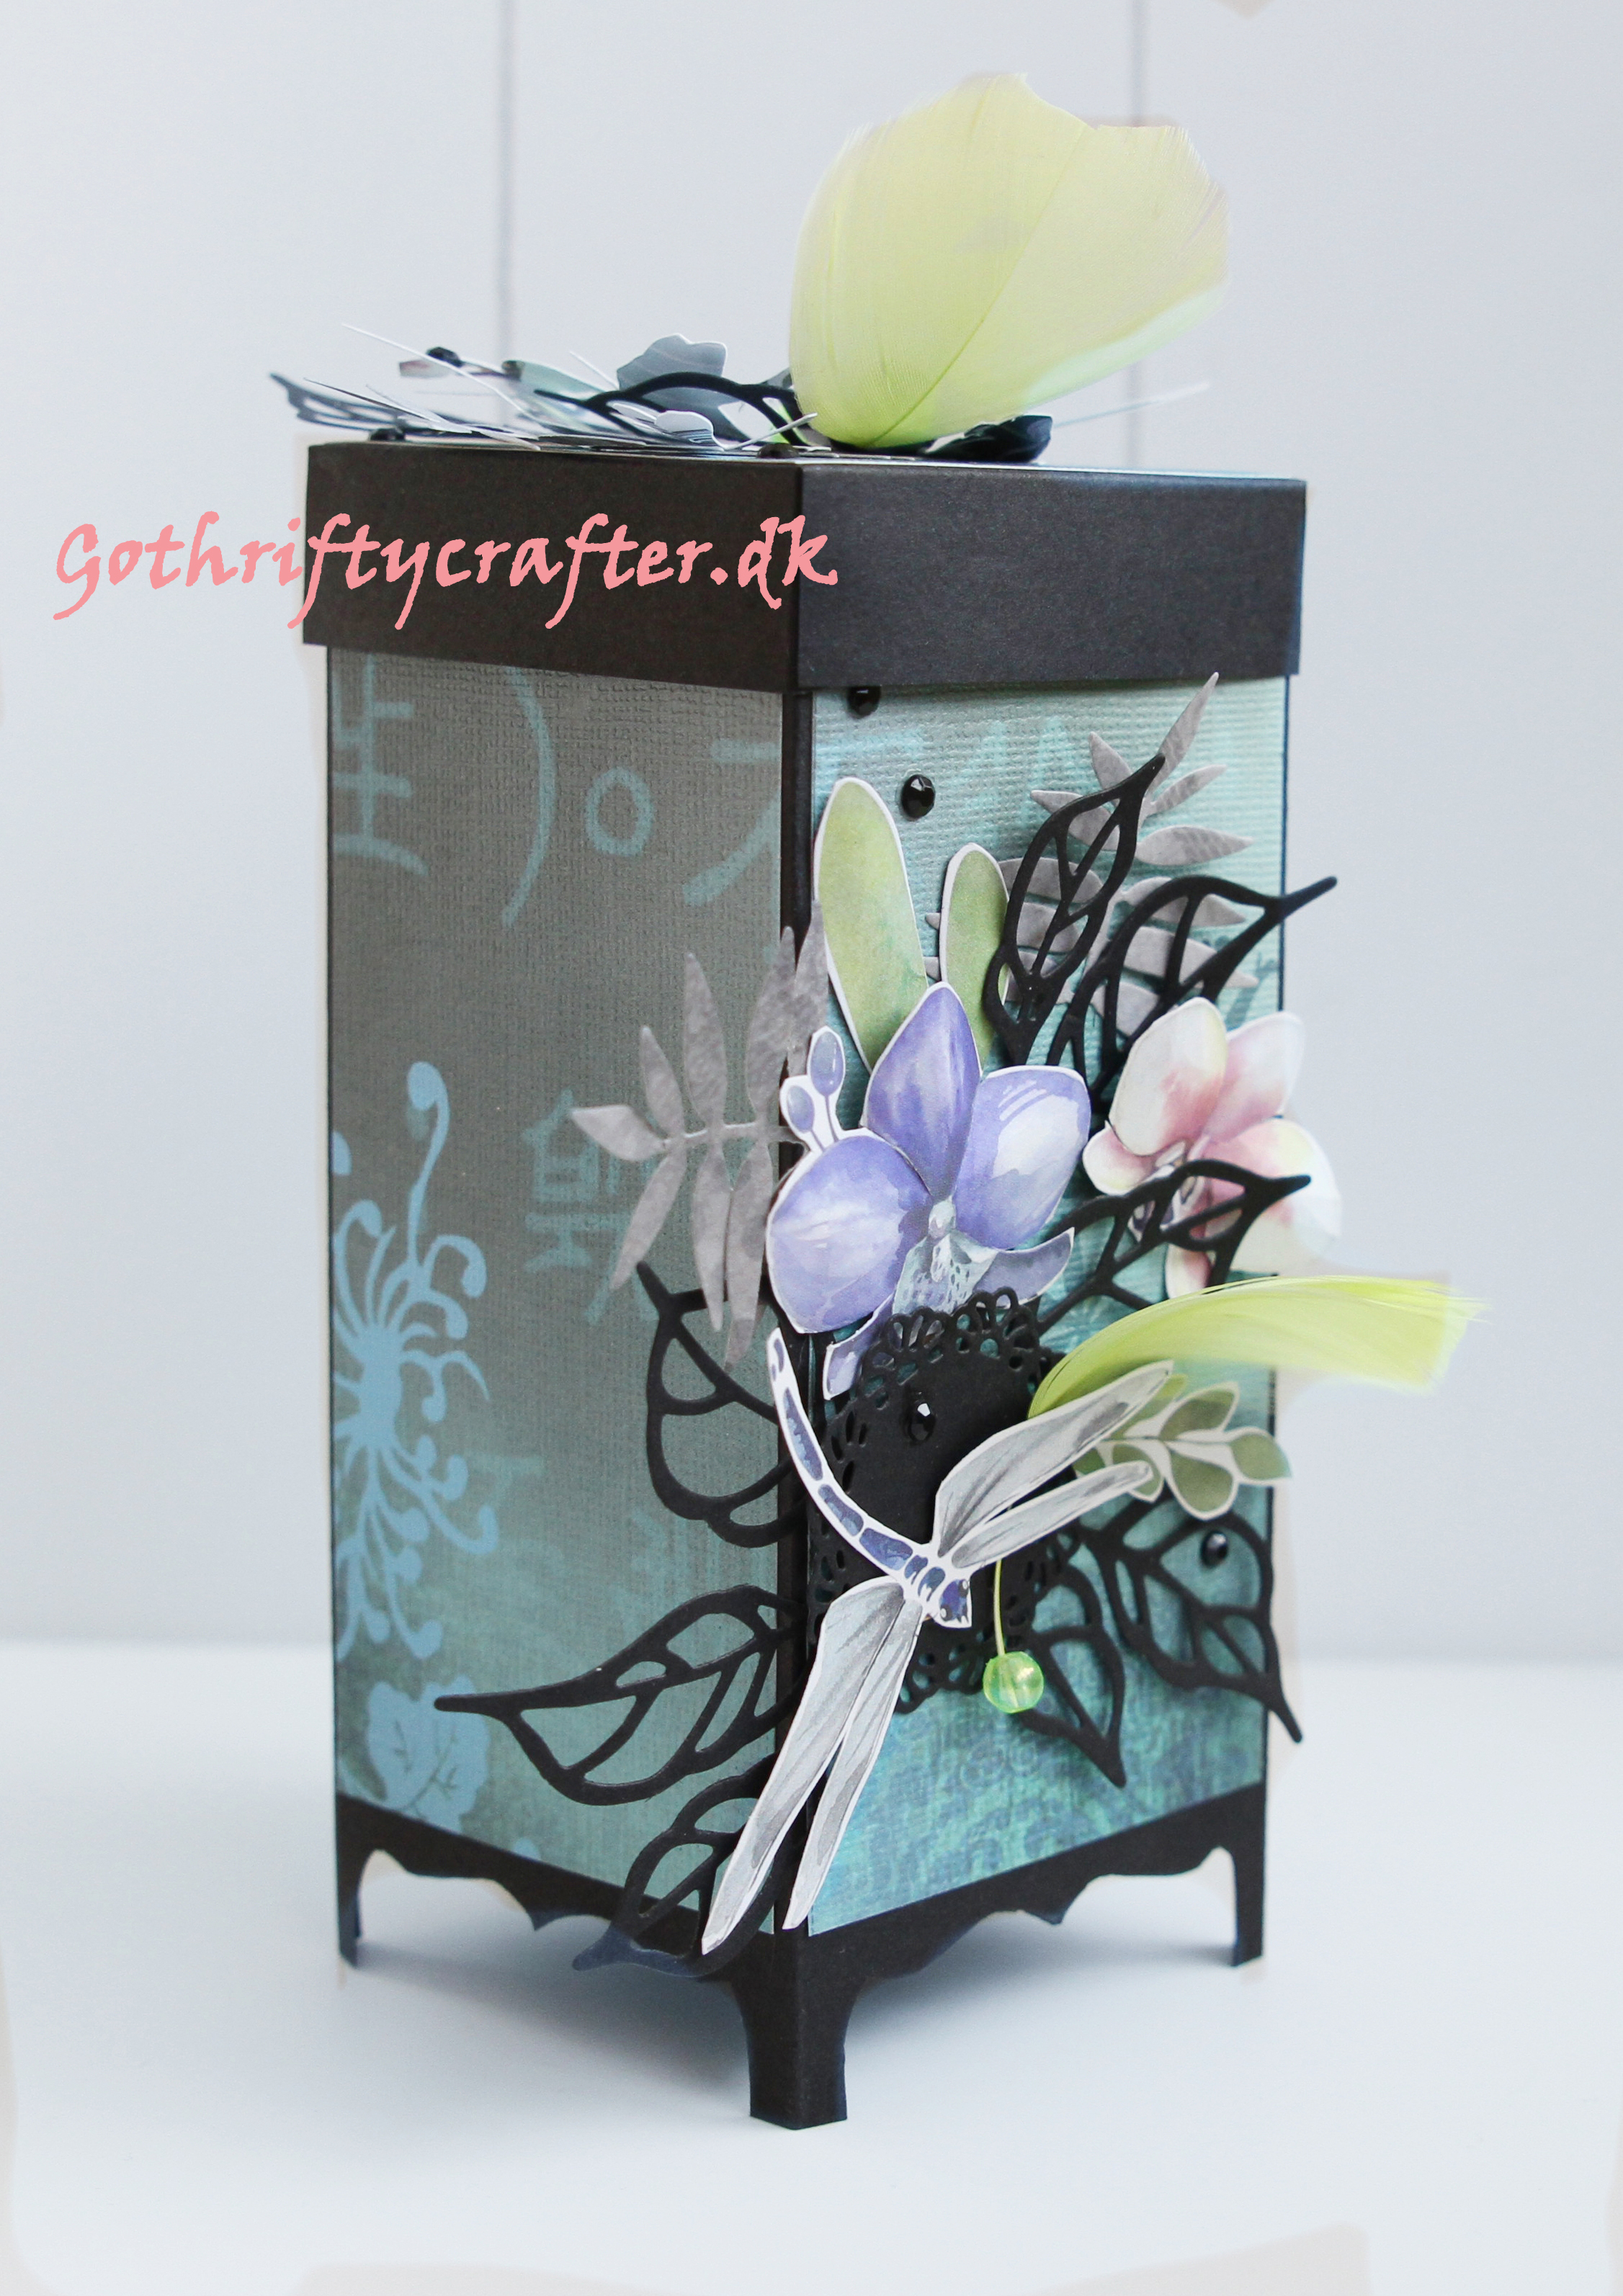 Gothriftycrafter_for Fabrika Decoru japanese style screen room divider box assembled sidejpg